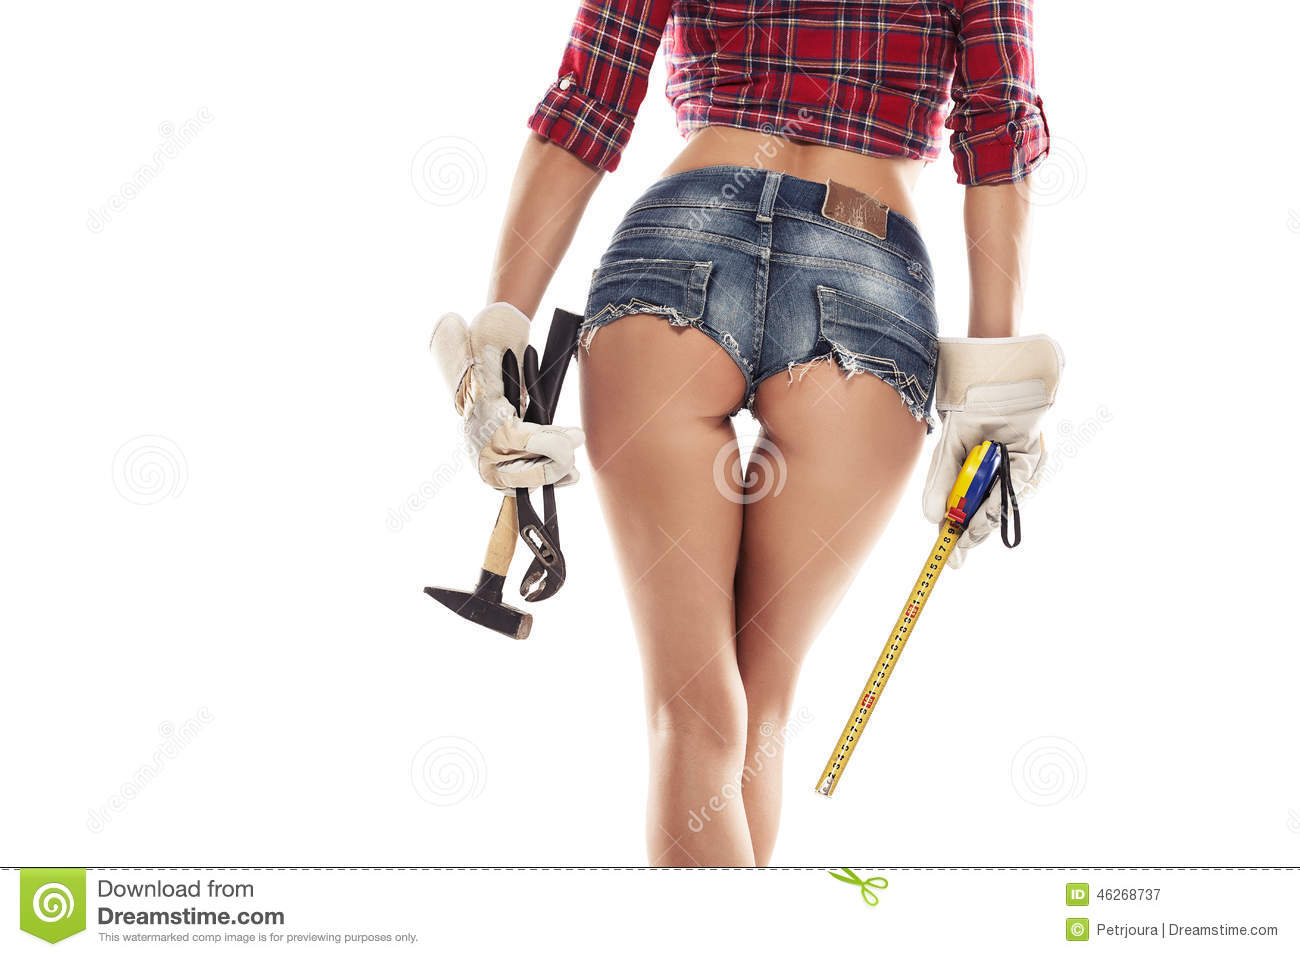 Nice woman mechanic showing buttock and holding hamme